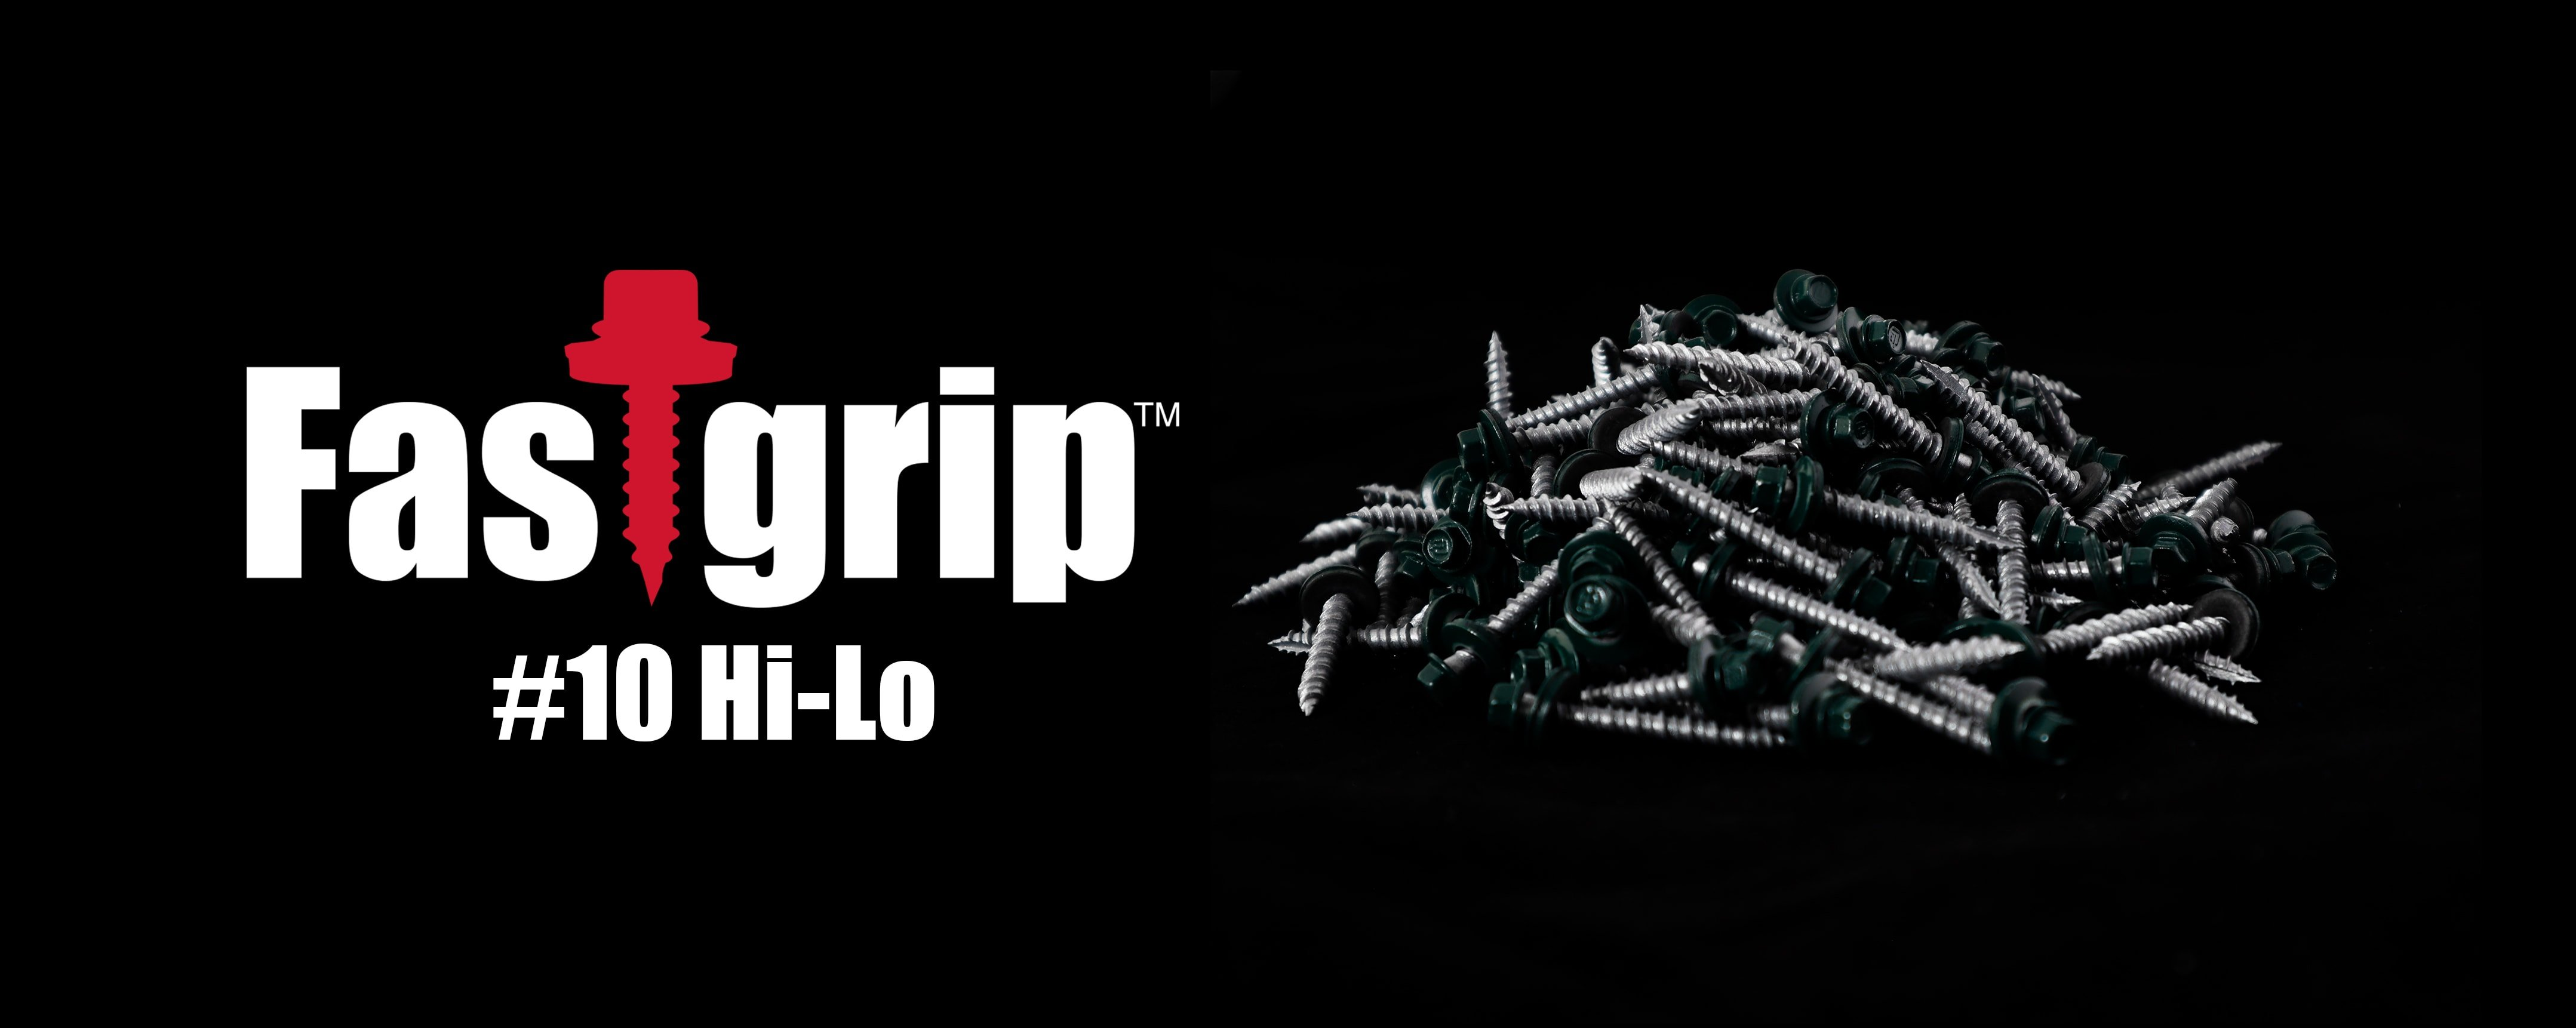 Fastgrip #10 hi-lo metal panel roofing screw